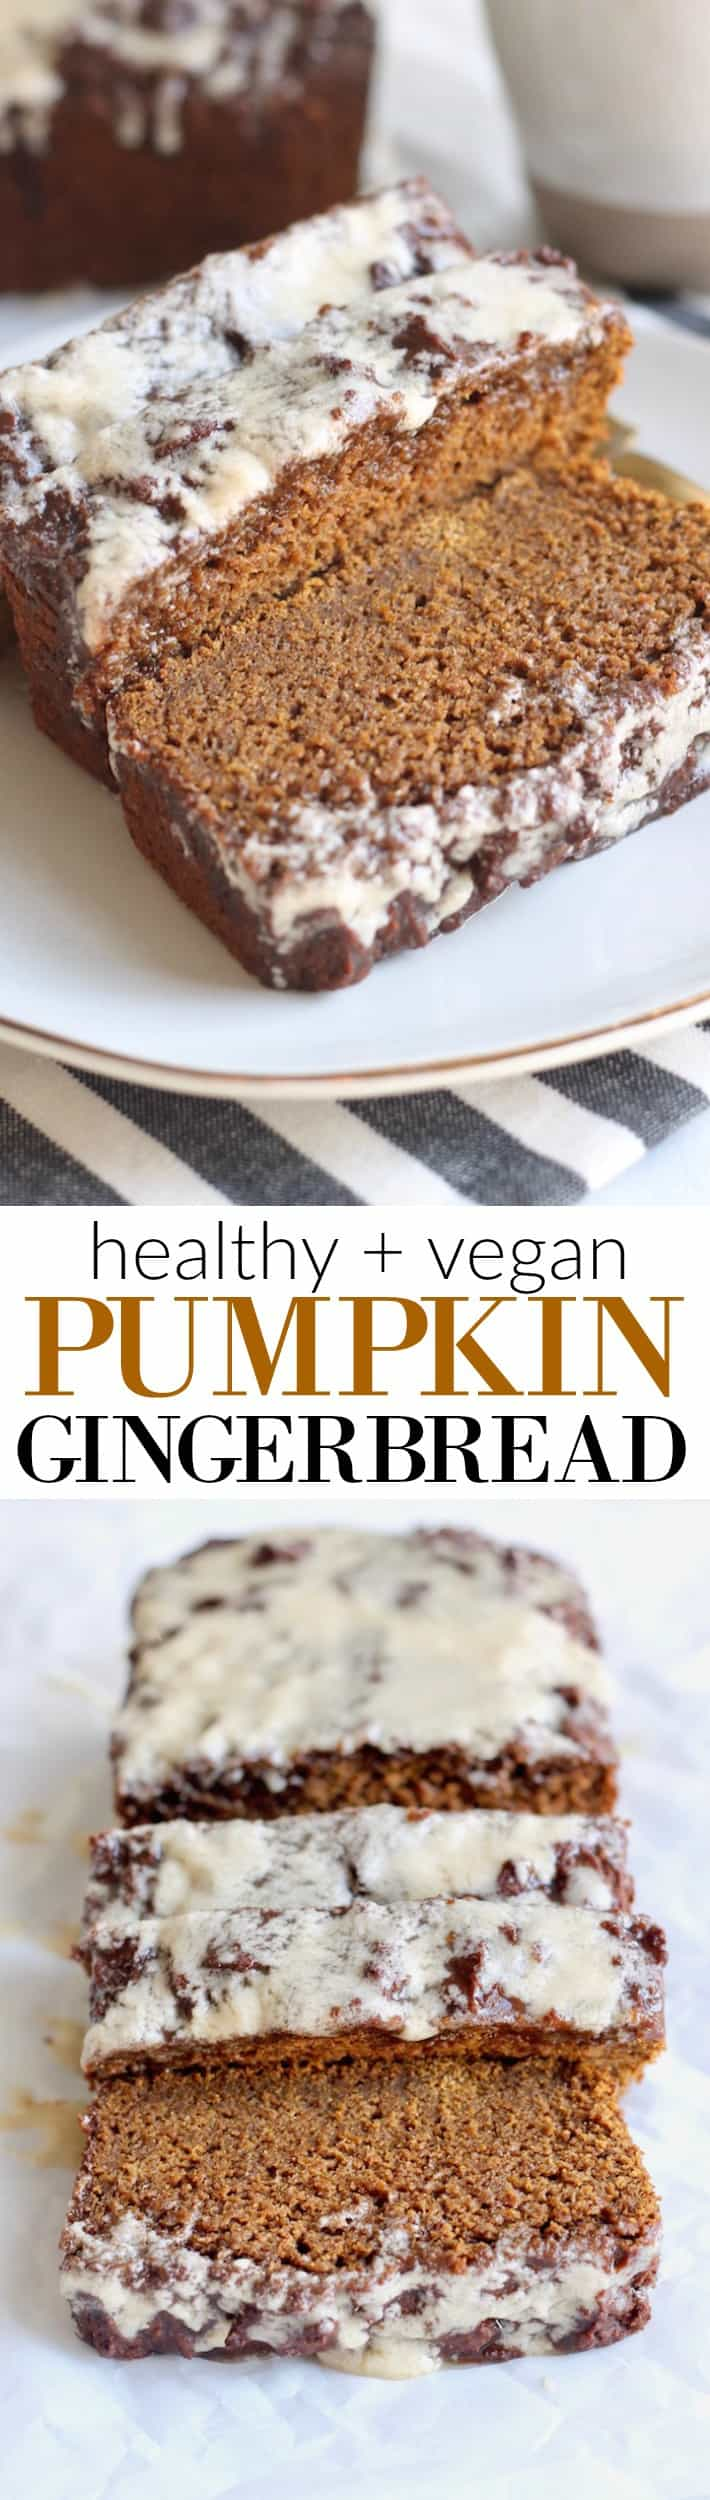 Made with whole wheat flour and sweetened with molasses and pure maple syrup, this healthy vegan Pumpkin Gingerbread with Maple Glaze is perfectly warm and spicy!